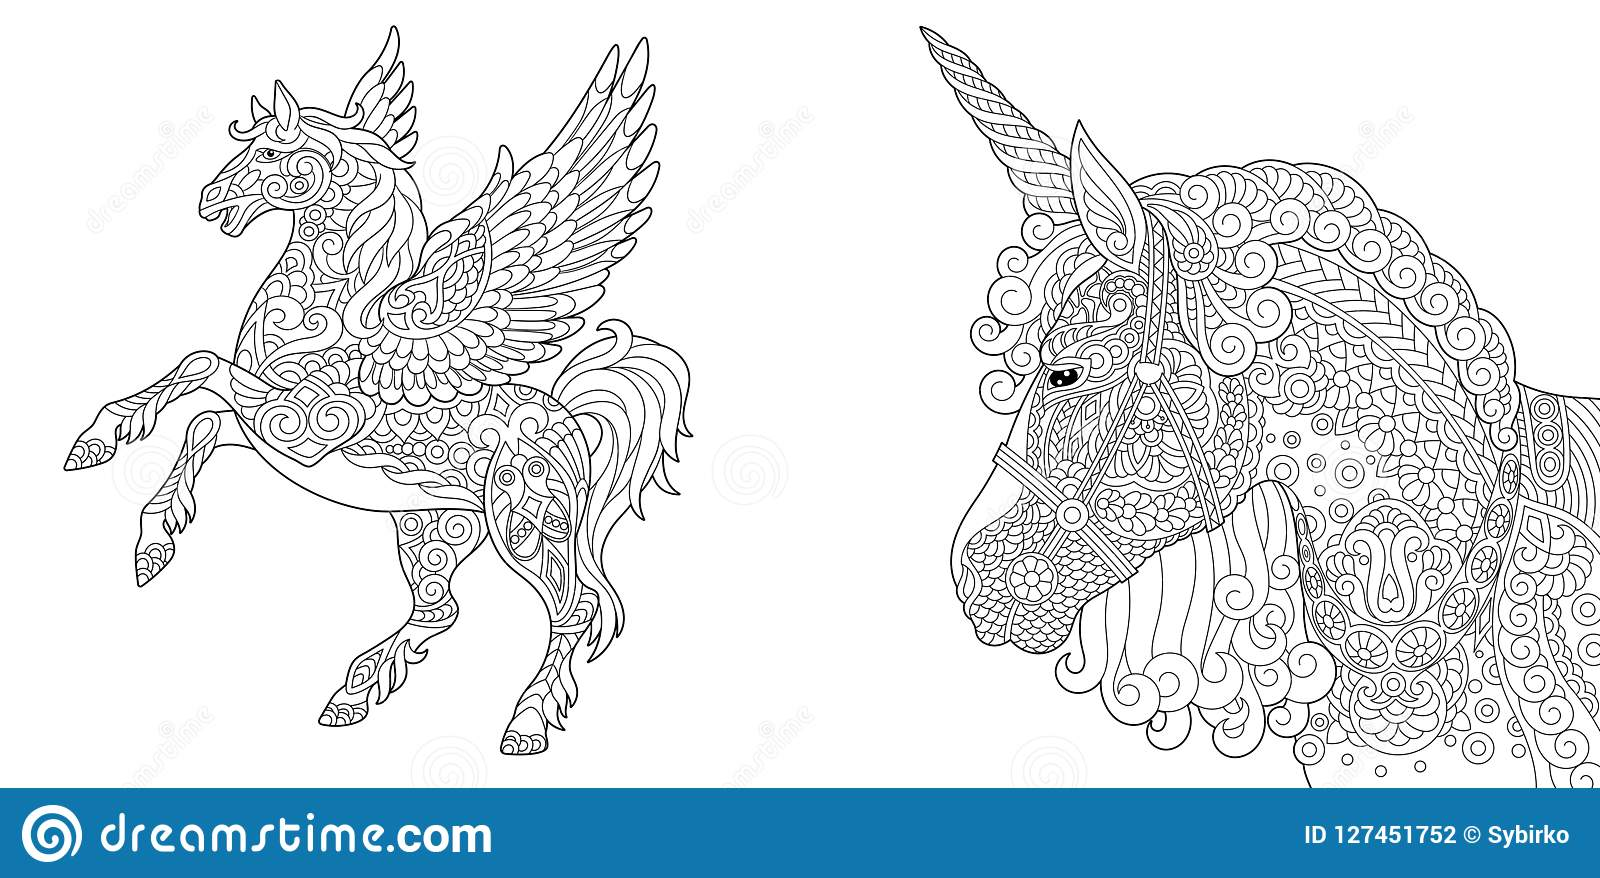 Coloring pages with unicorn and pegasus